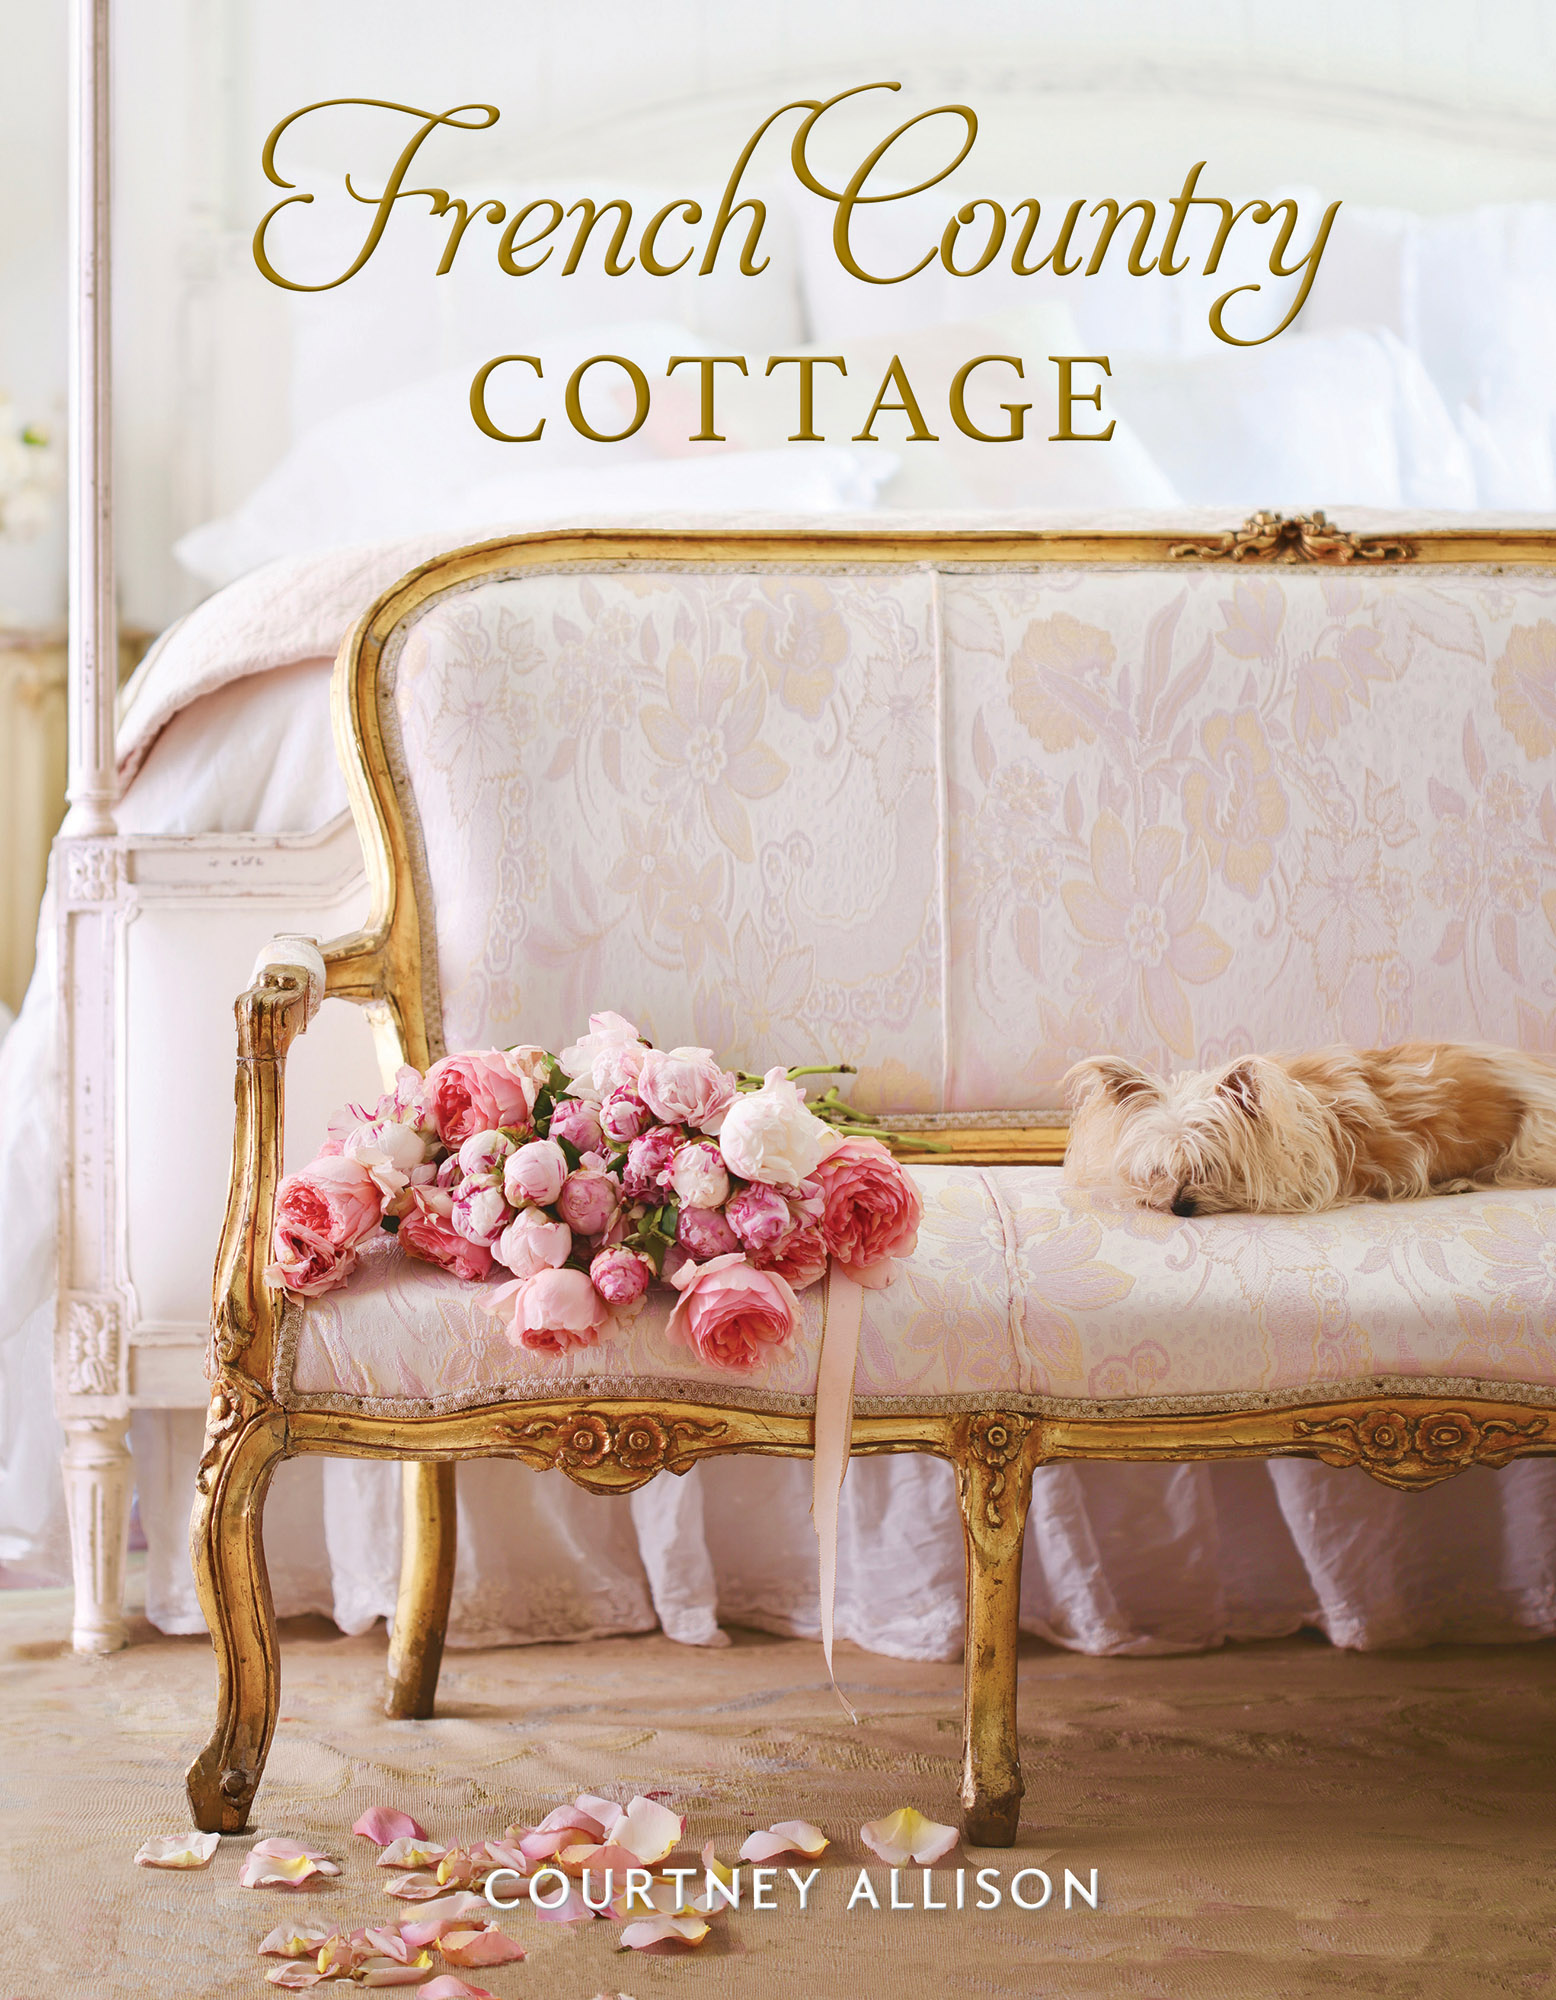 French-Cottage-Cover-02-1